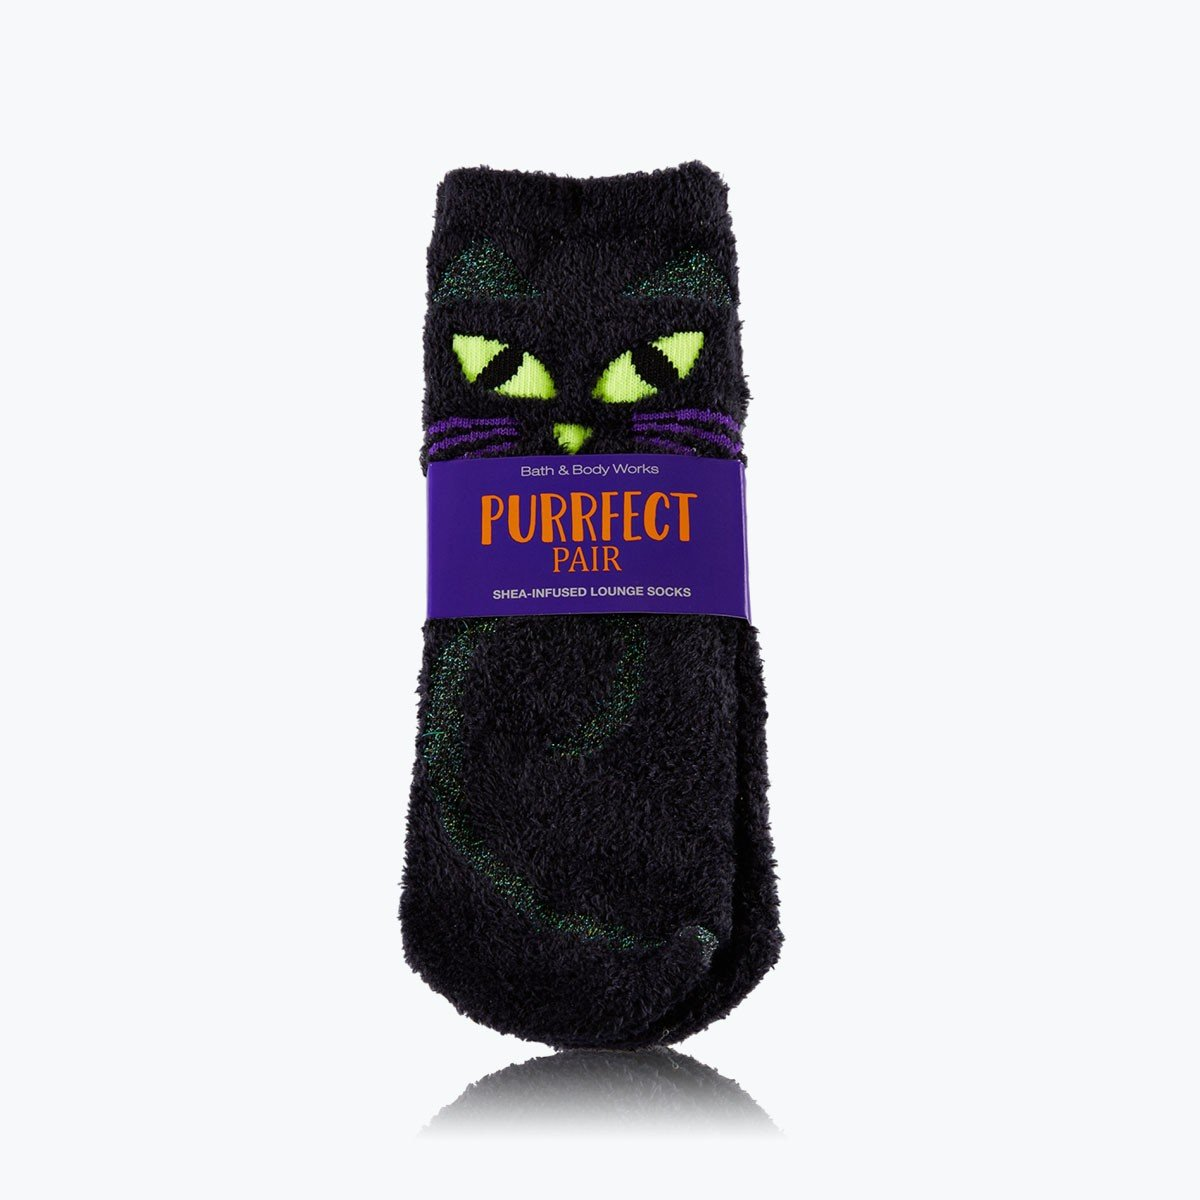 Bath and Body Works Shea Infused Lounge Socks Purrfect Pair Halloween Cozy Black Cat